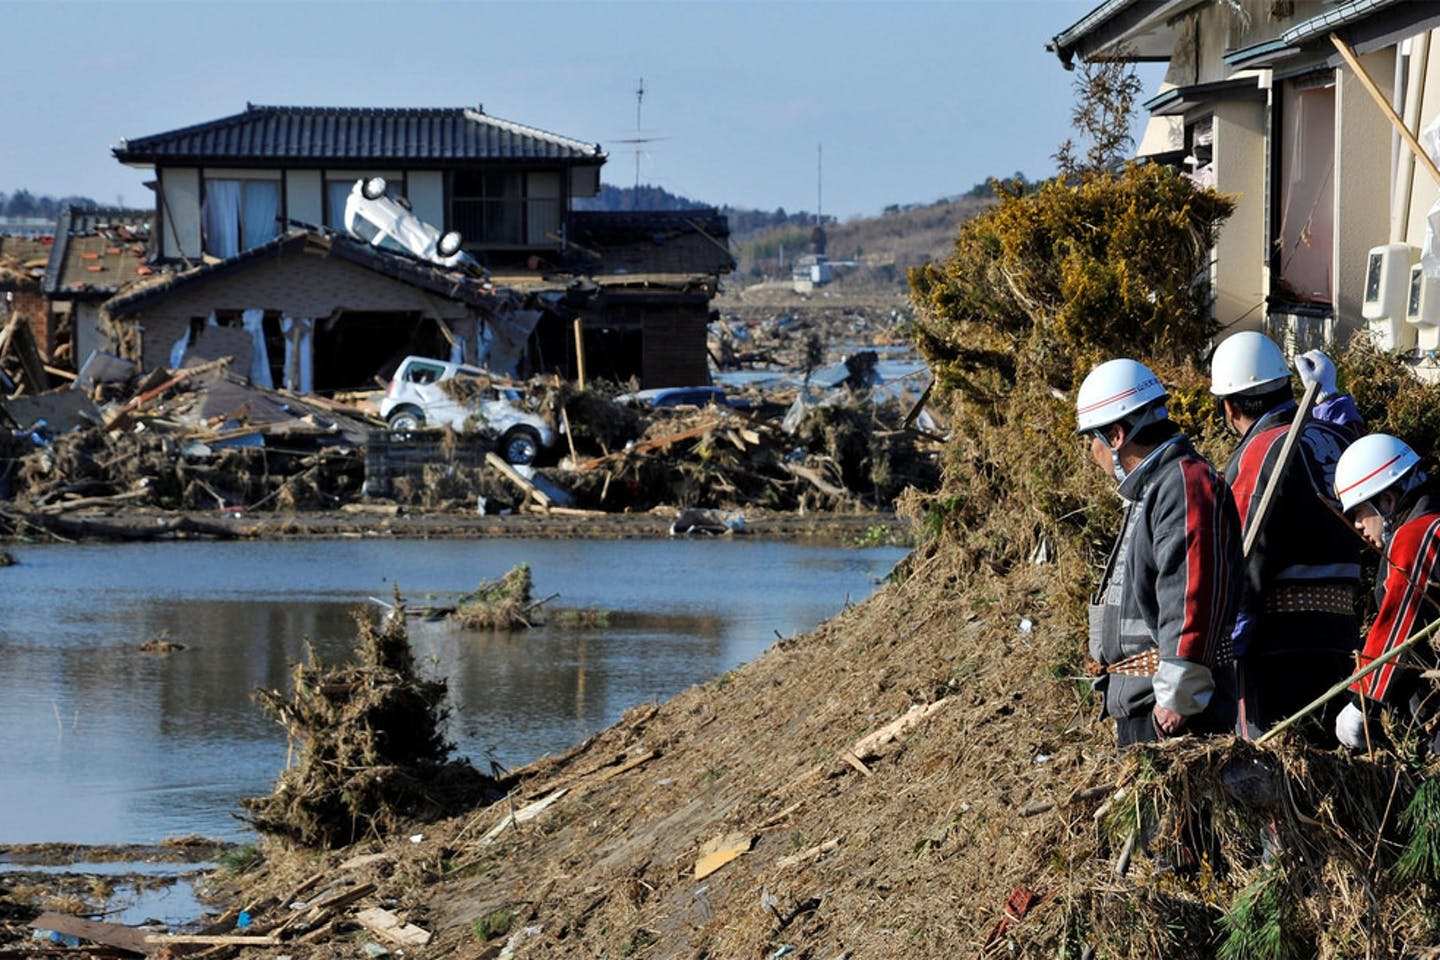 recovery efforts after the 11 March 2011 earthquake and tsunami disaster